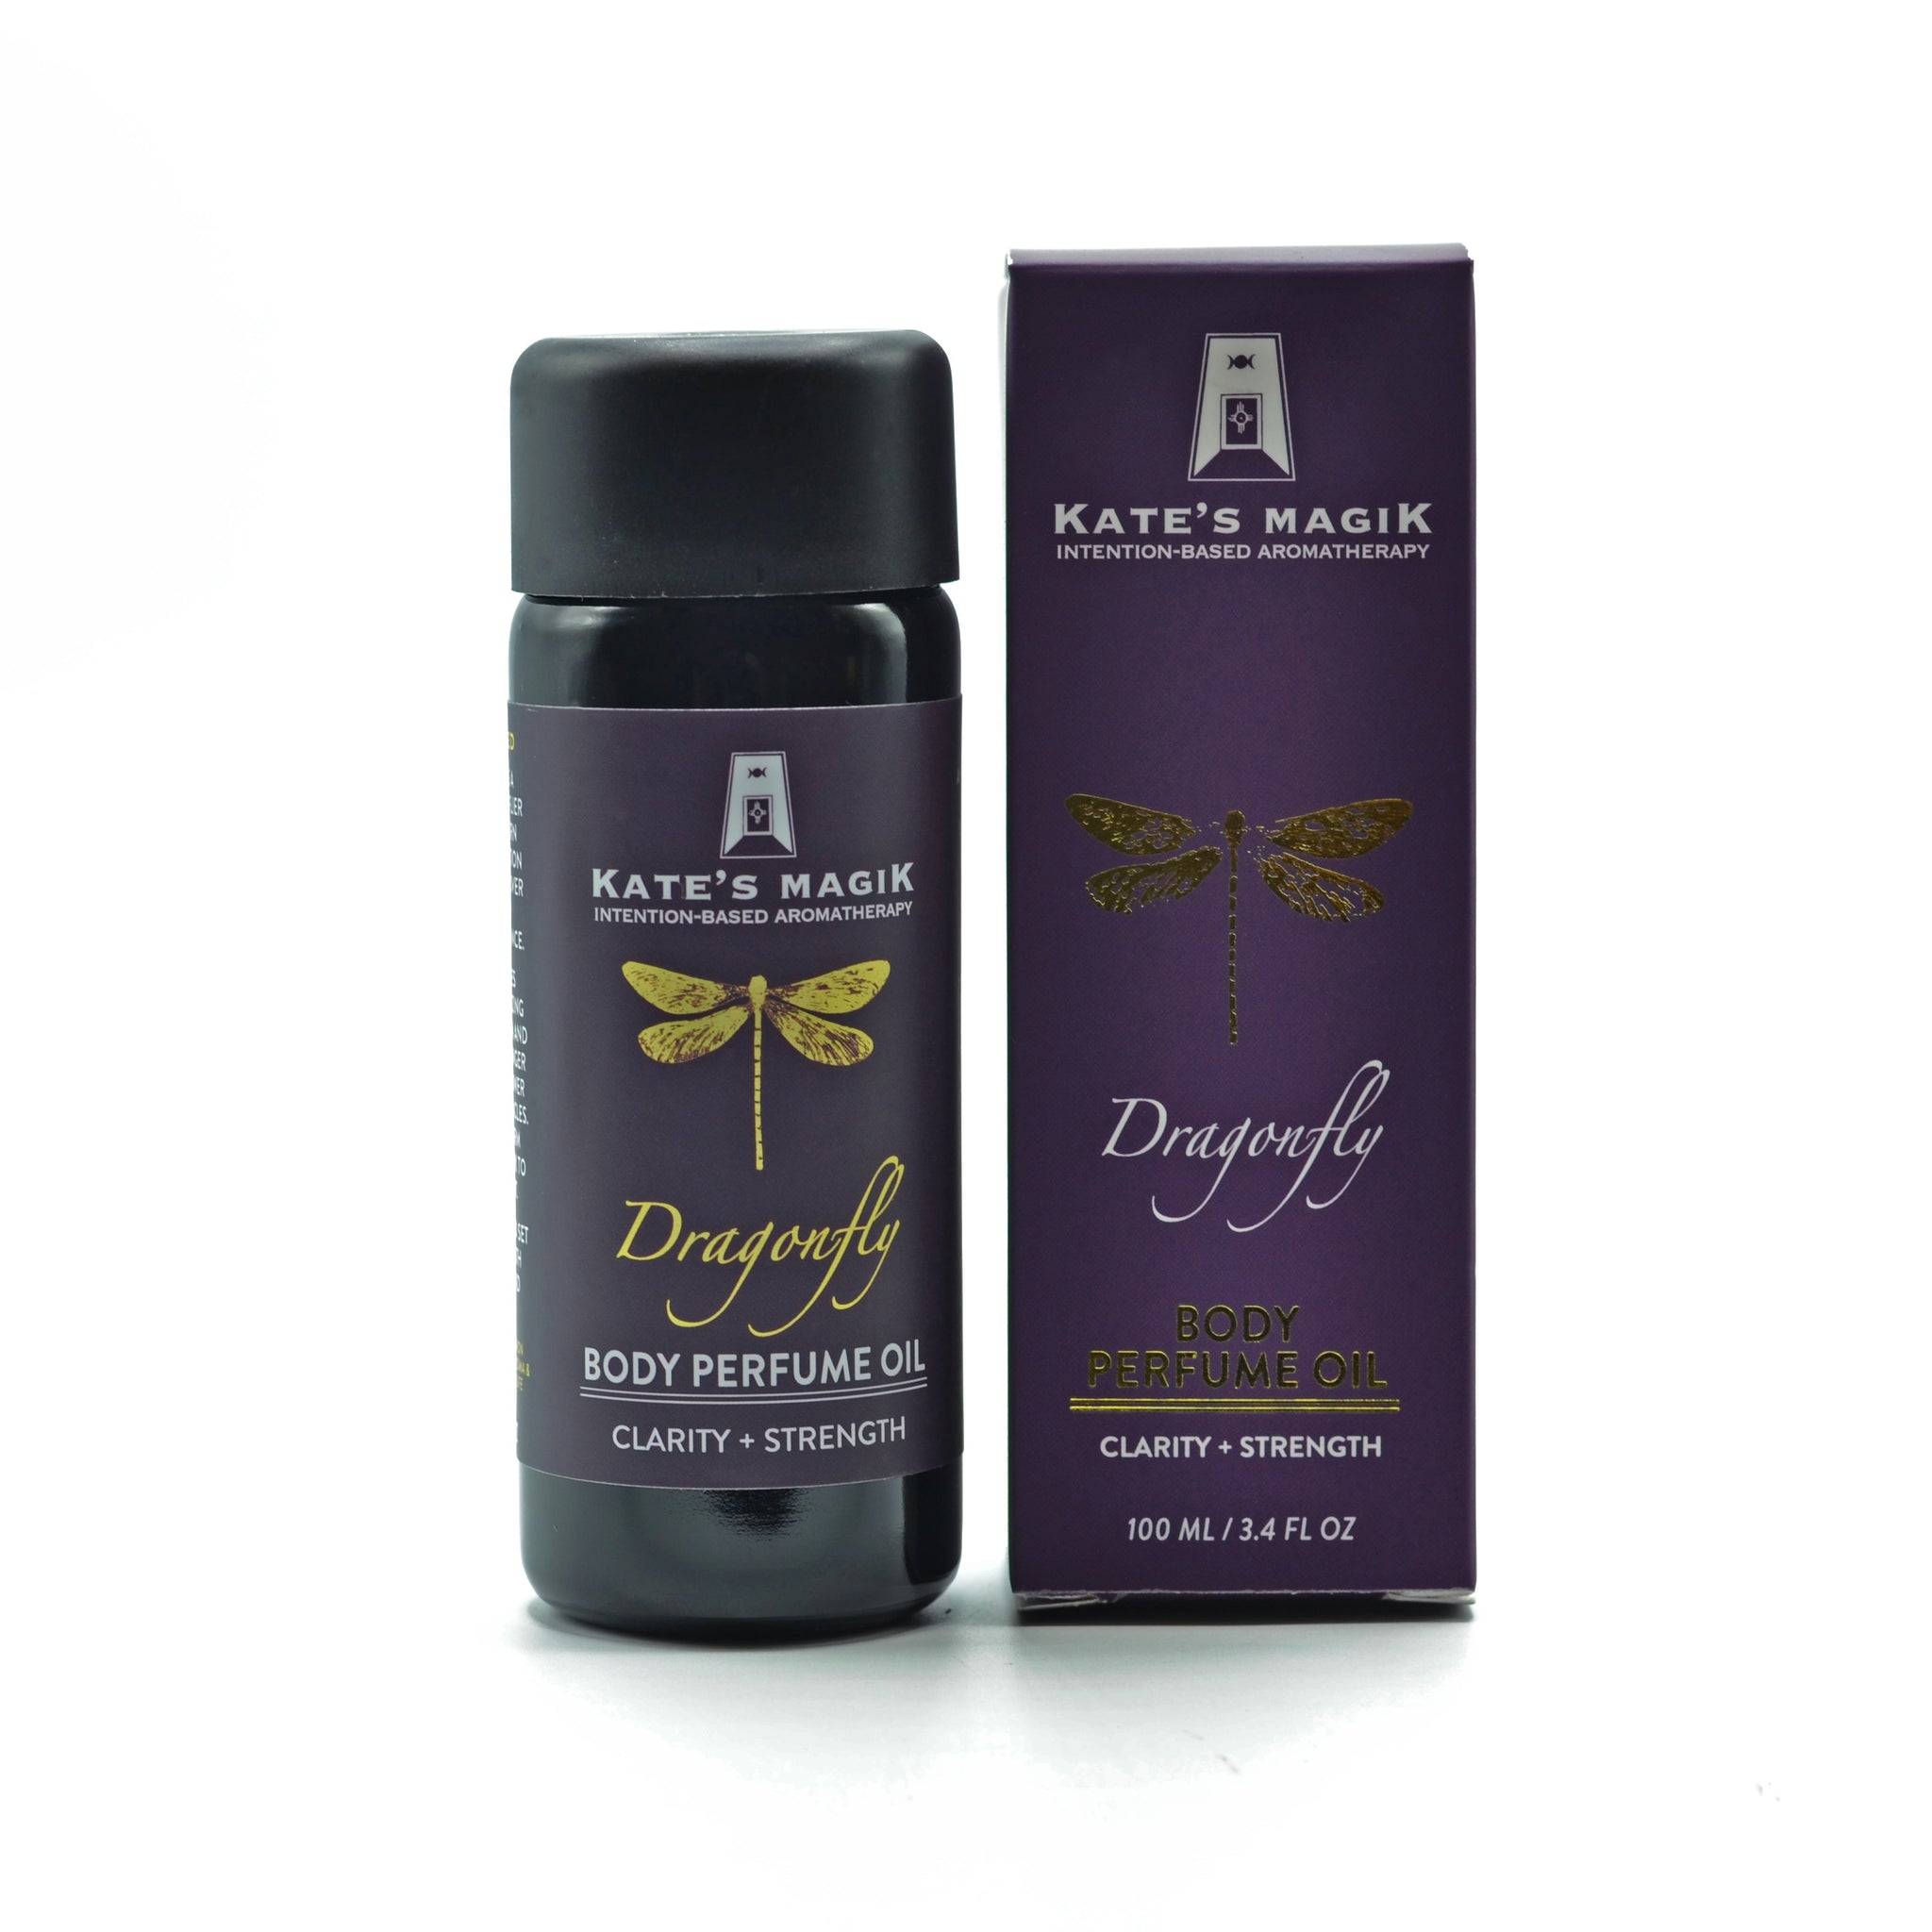 Dragonfly Body Perfume Oil